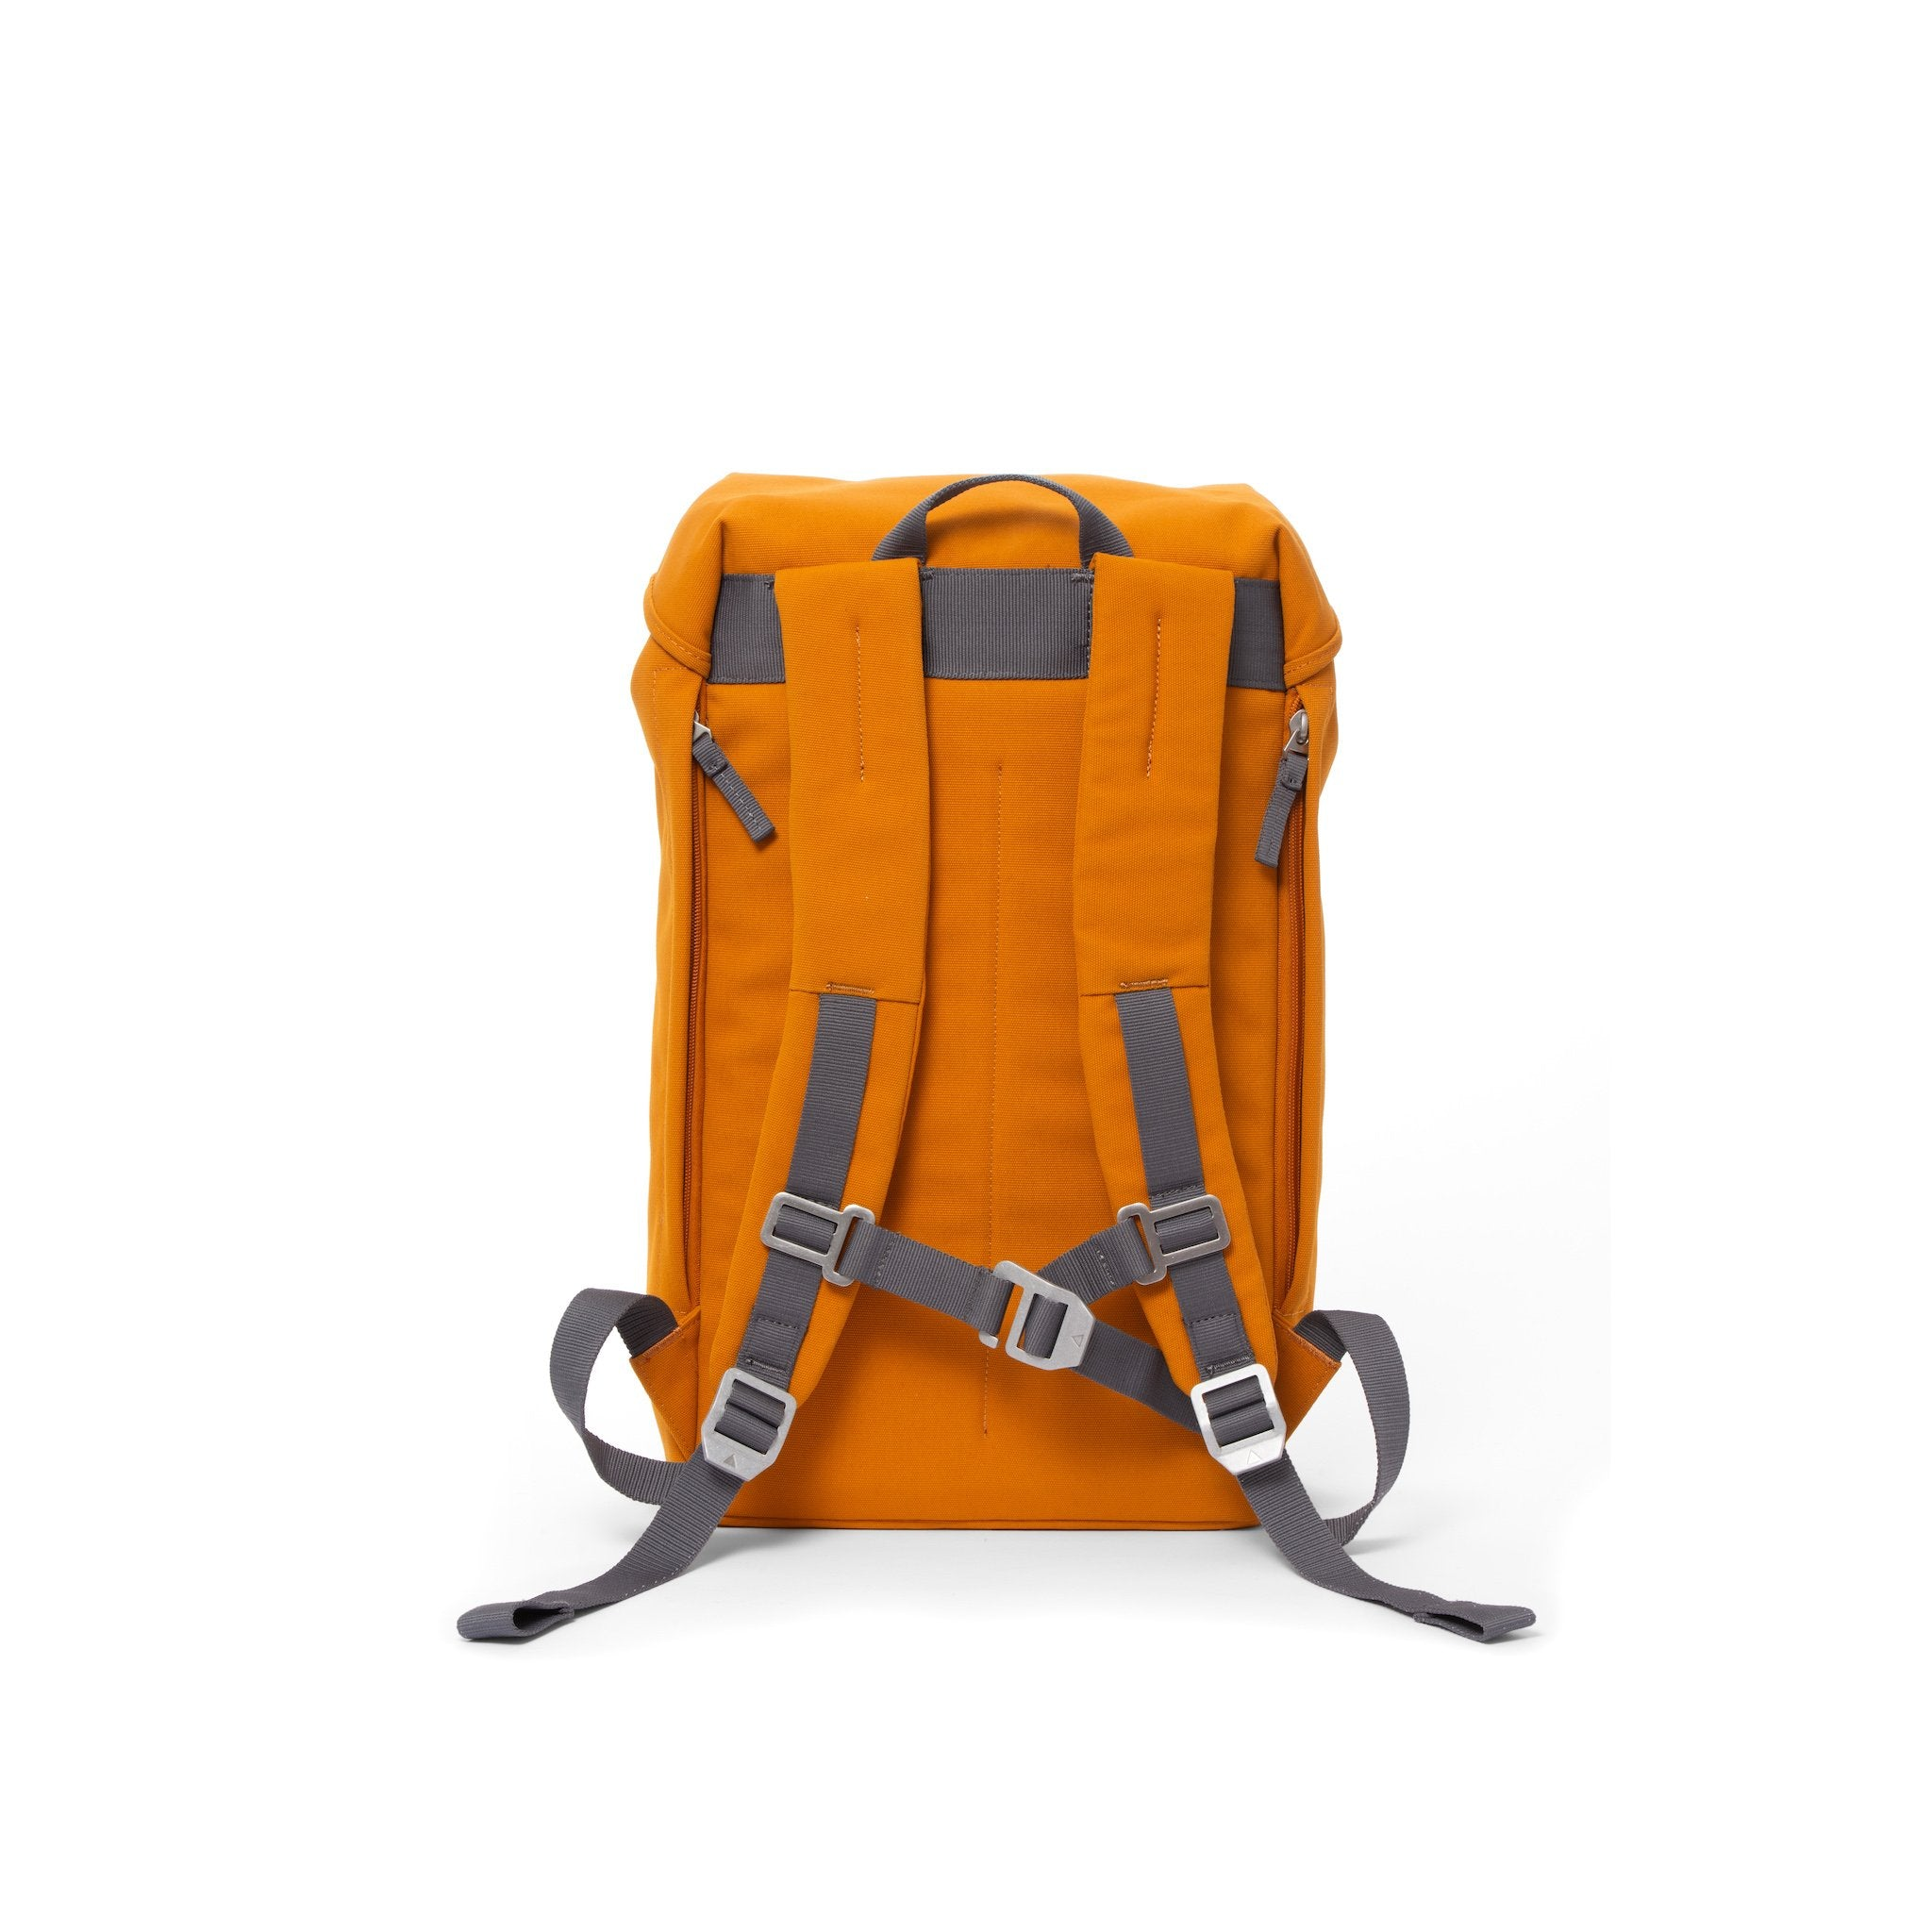 Orange waterproof backpack with padded shoulder straps and chest strap.